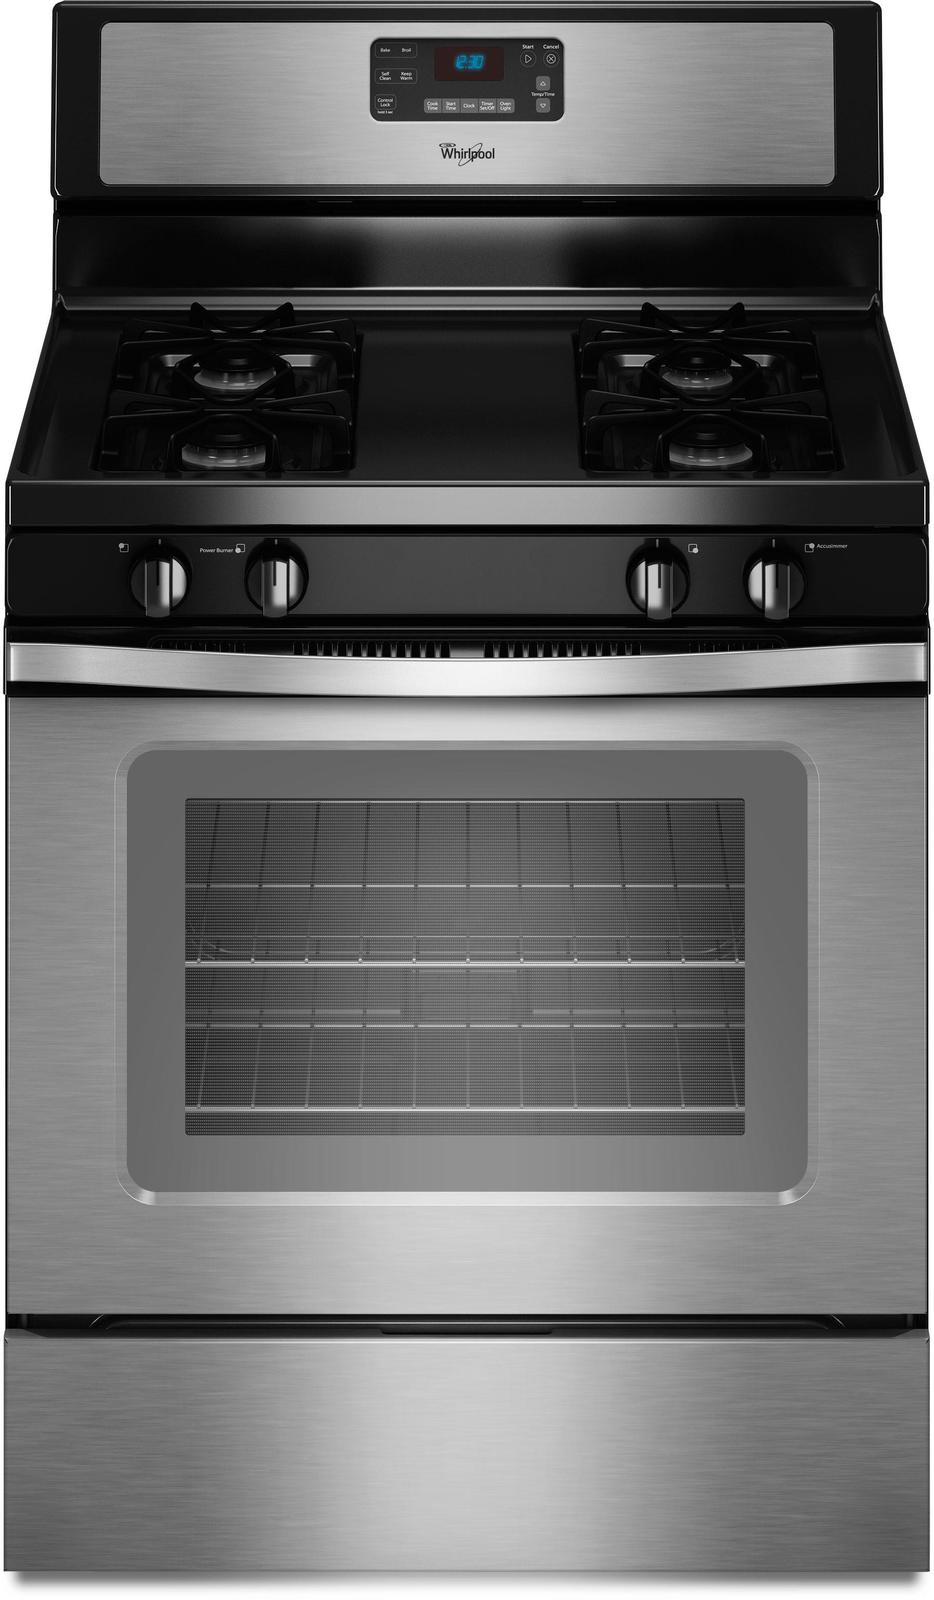 Whirlpool Wfg510s0as 30 Quot Freestanding Gas Range With 4